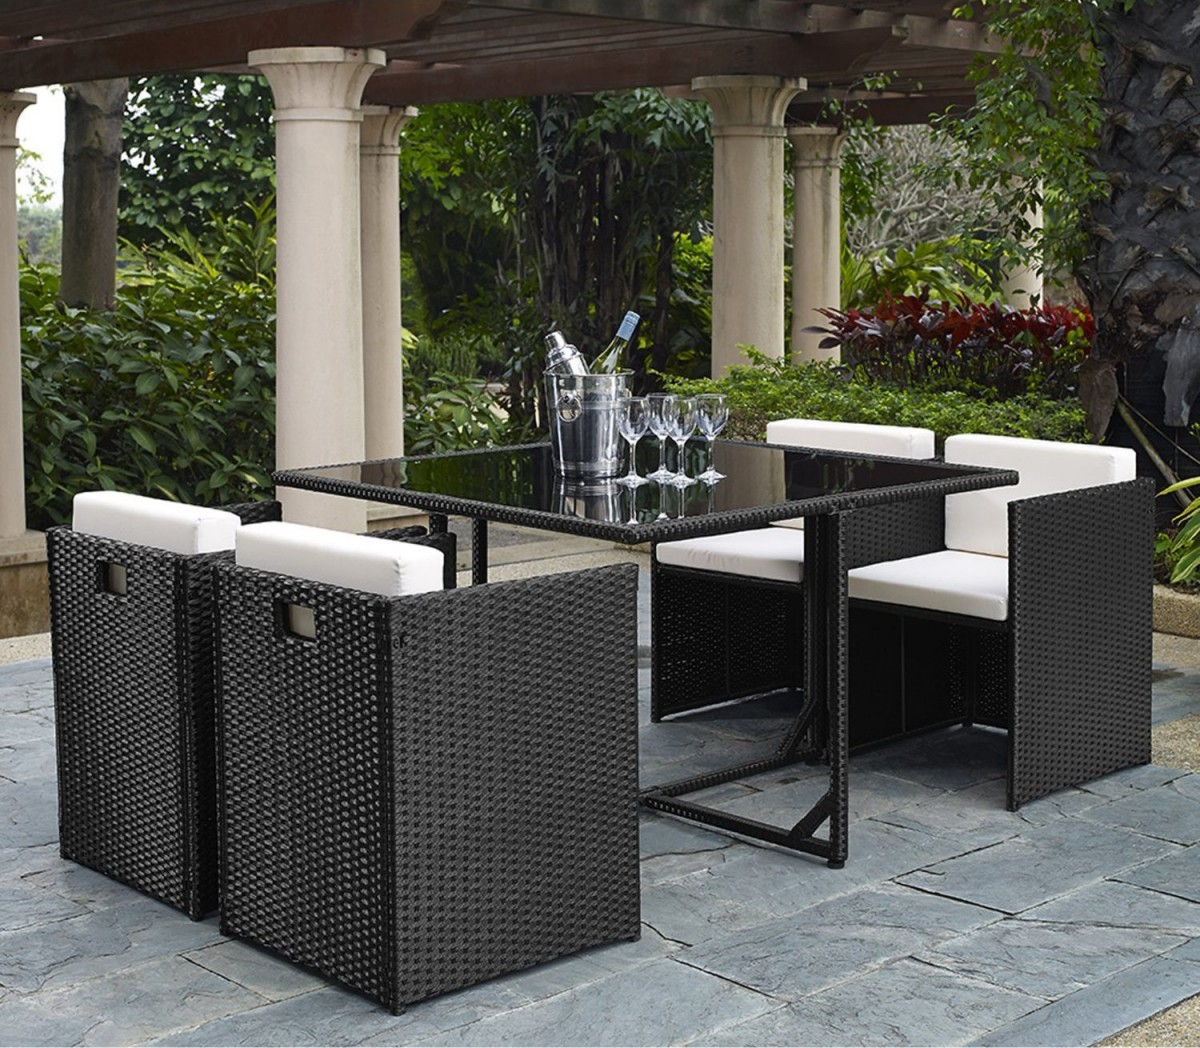 5 piece rattan cube garden furniture set w stowaway chairs for Balcony furniture set